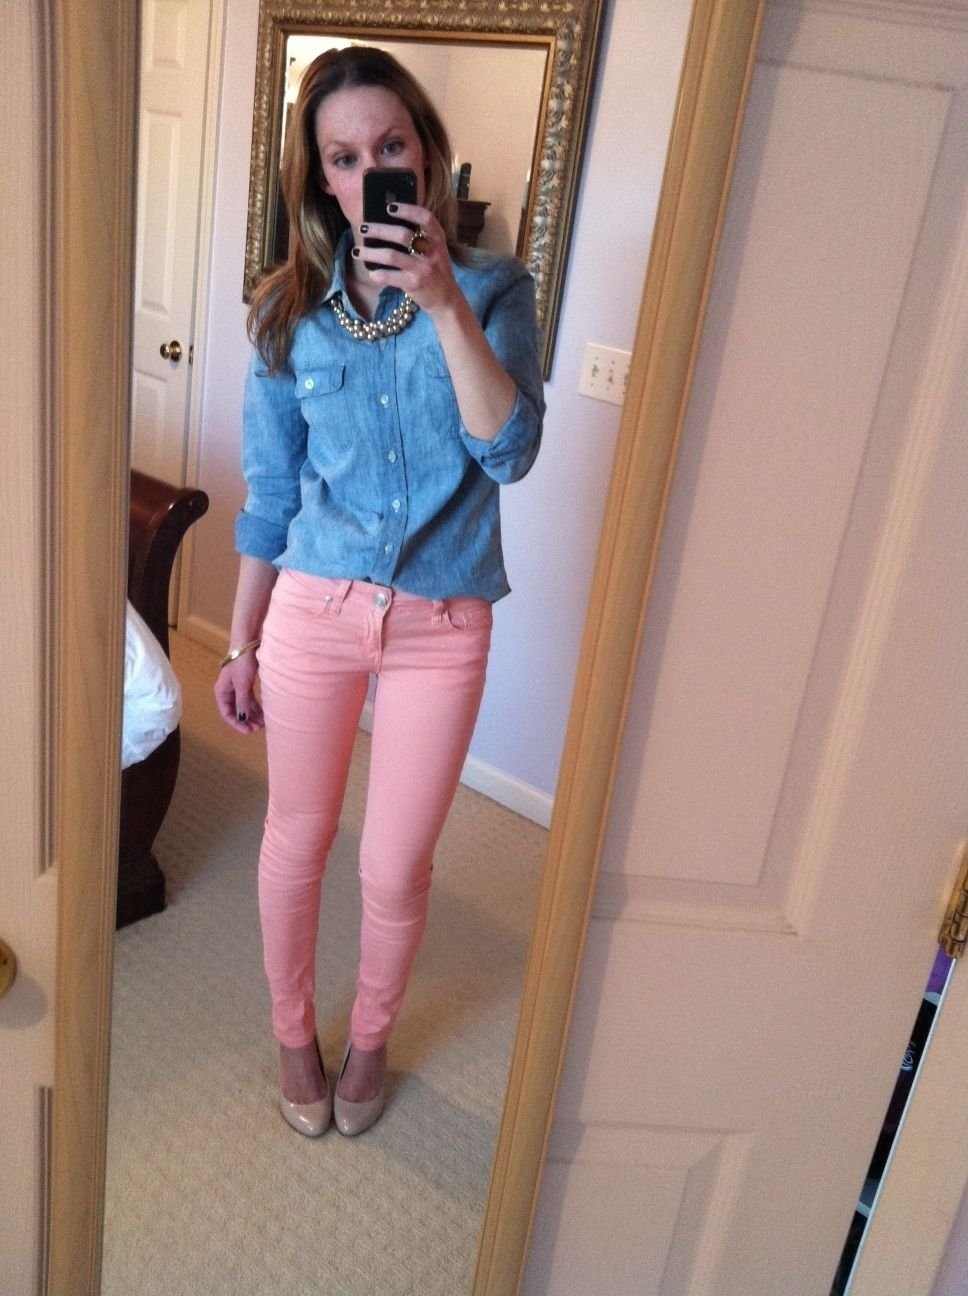 How to peach wear colored jeans forecasting to wear for spring in 2019